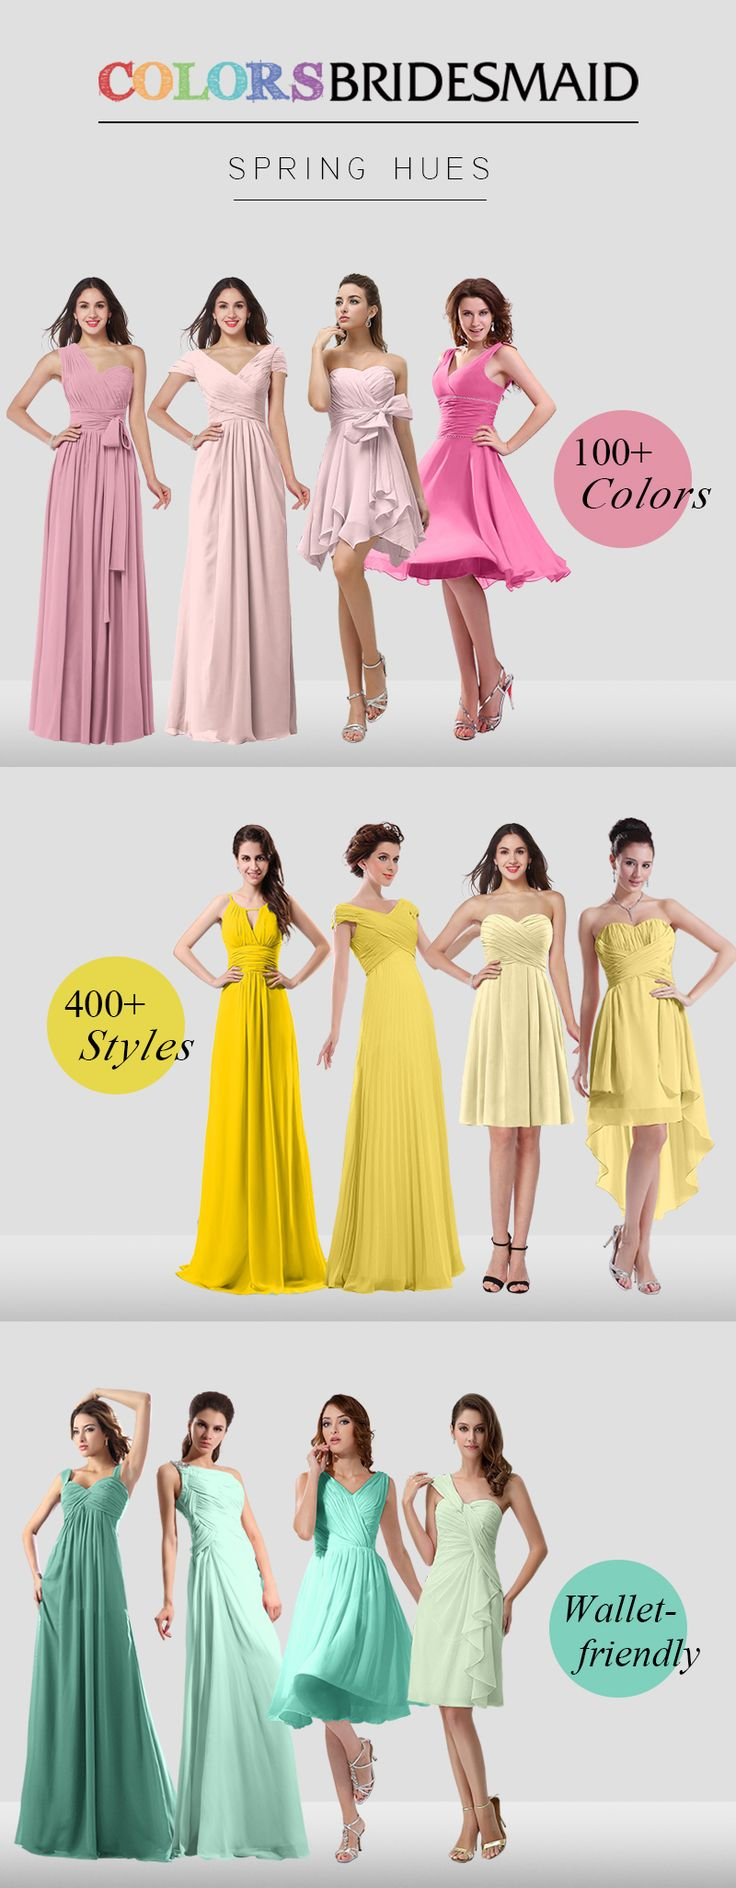 Bridesmaid Dresses in 400+ Styles & 100+ Colors that won't Break your bank. Custom Made to closely fit your Own Size. USA Free Shipping. Buy Now!